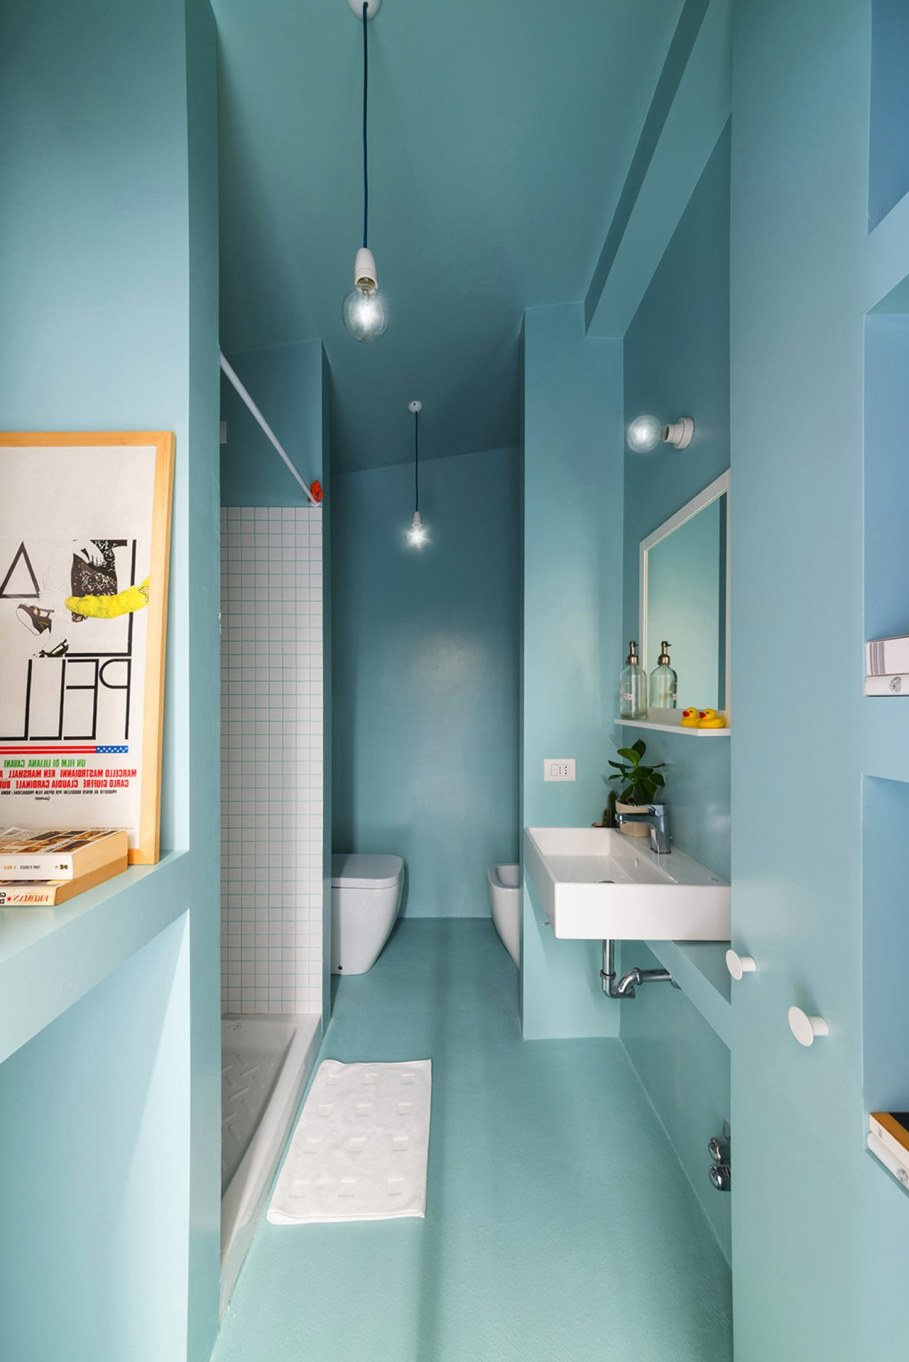 OCS Batipin Flat Transformer Apartment In Milan - Bathroom